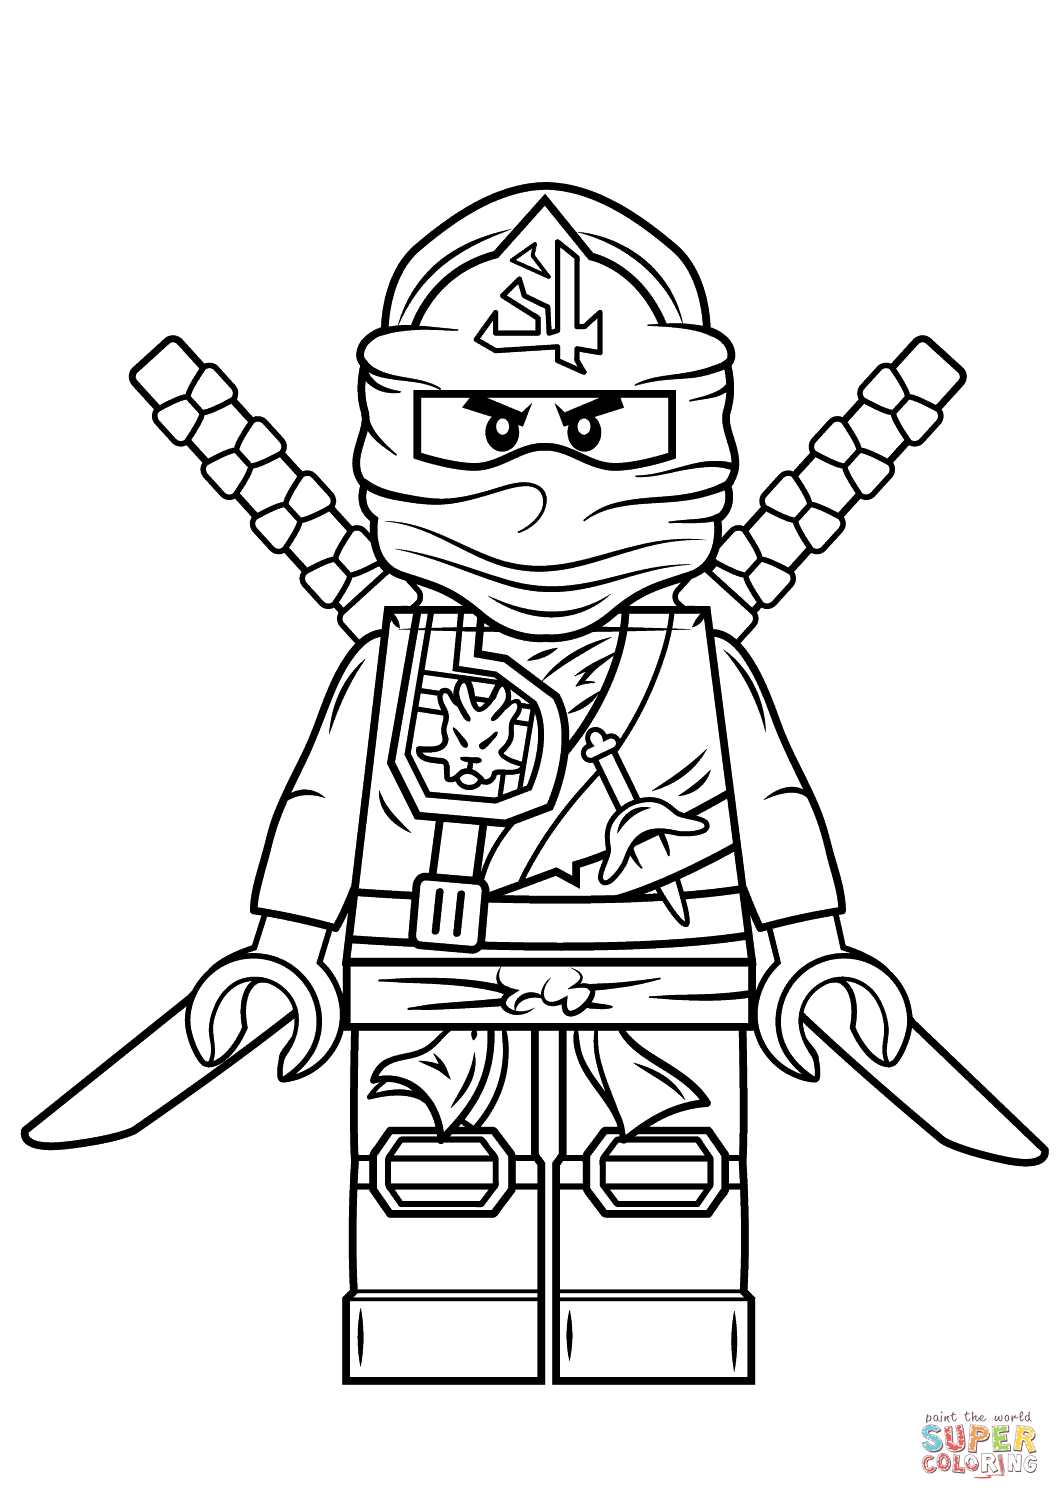 green ninjago dragon coloring pages learn how to draw green ninja from ninjago ninjago step dragon coloring green pages ninjago